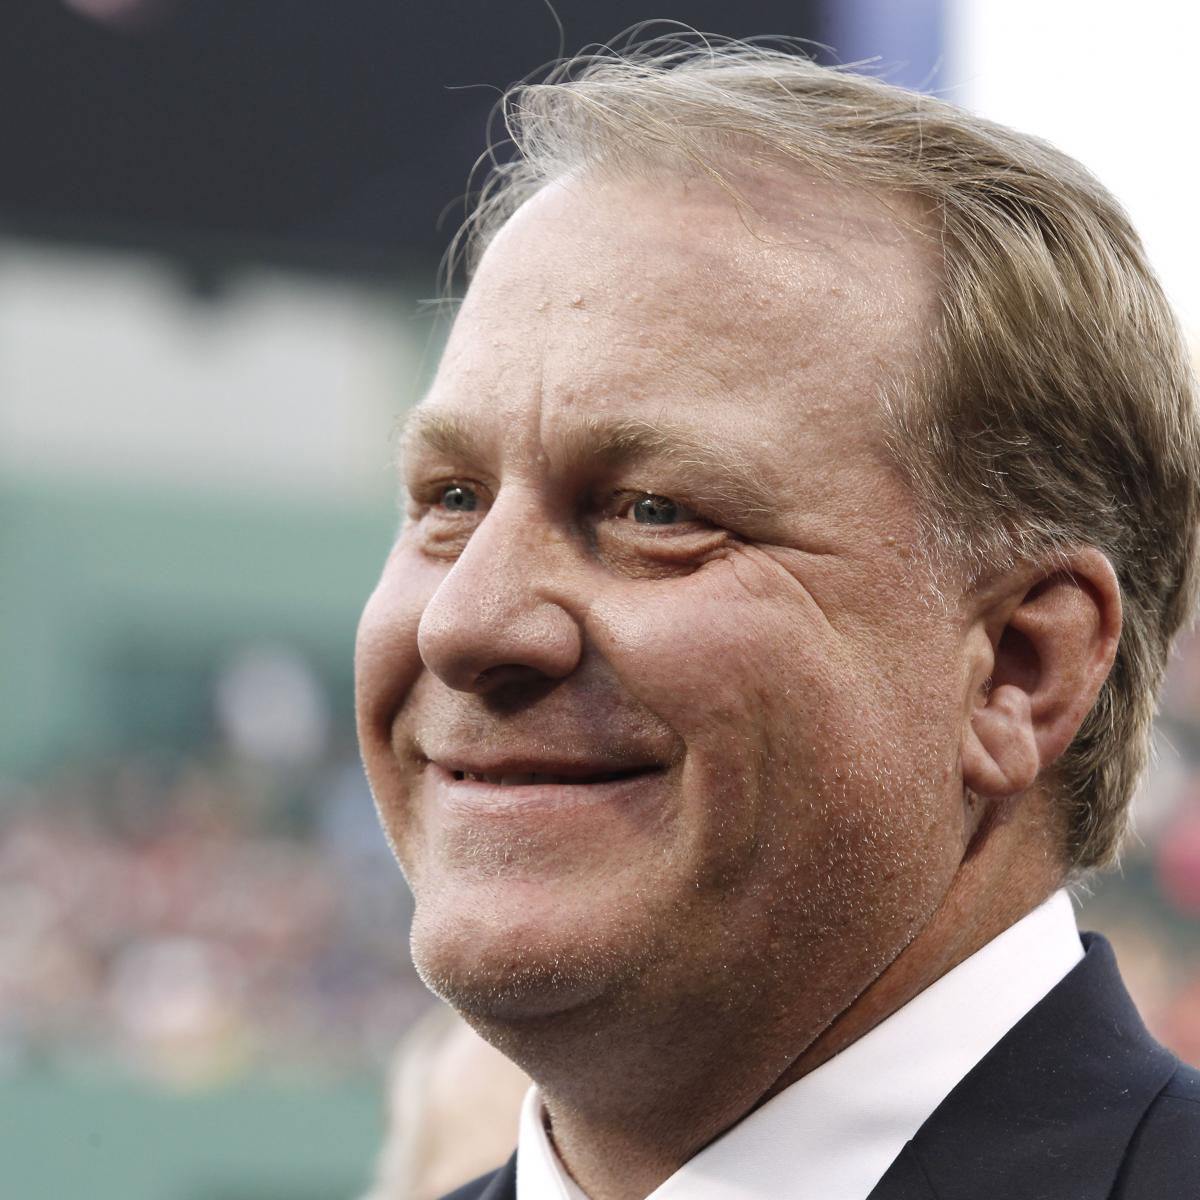 Former MLB Pitcher Curt Schilling Says He Won't Run for Congress in Arizona